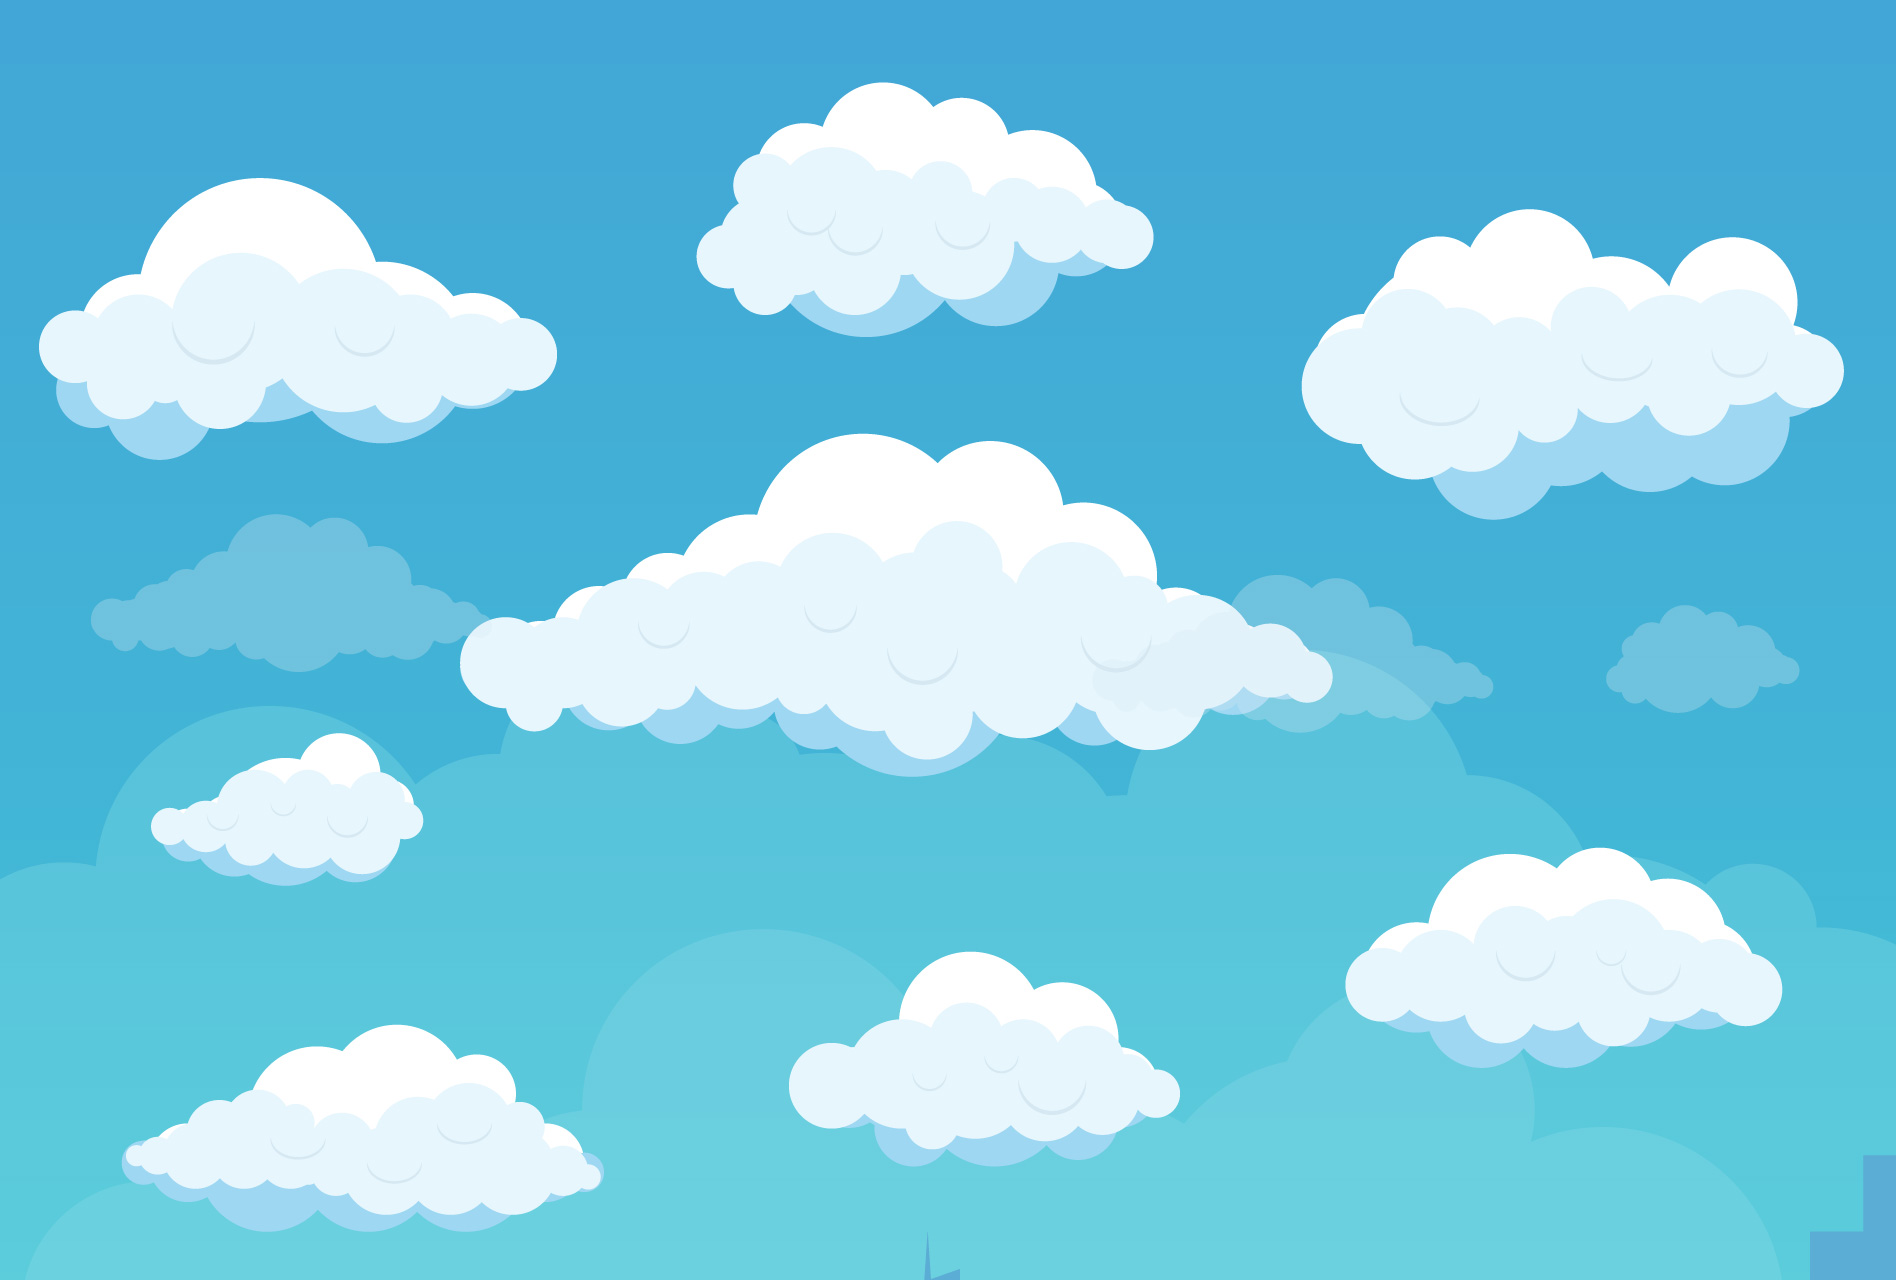 Google cloud clipart png royalty free download 999+ Cloud Clipart [Free Download] Transparent Png - Cloud Clipart png royalty free download